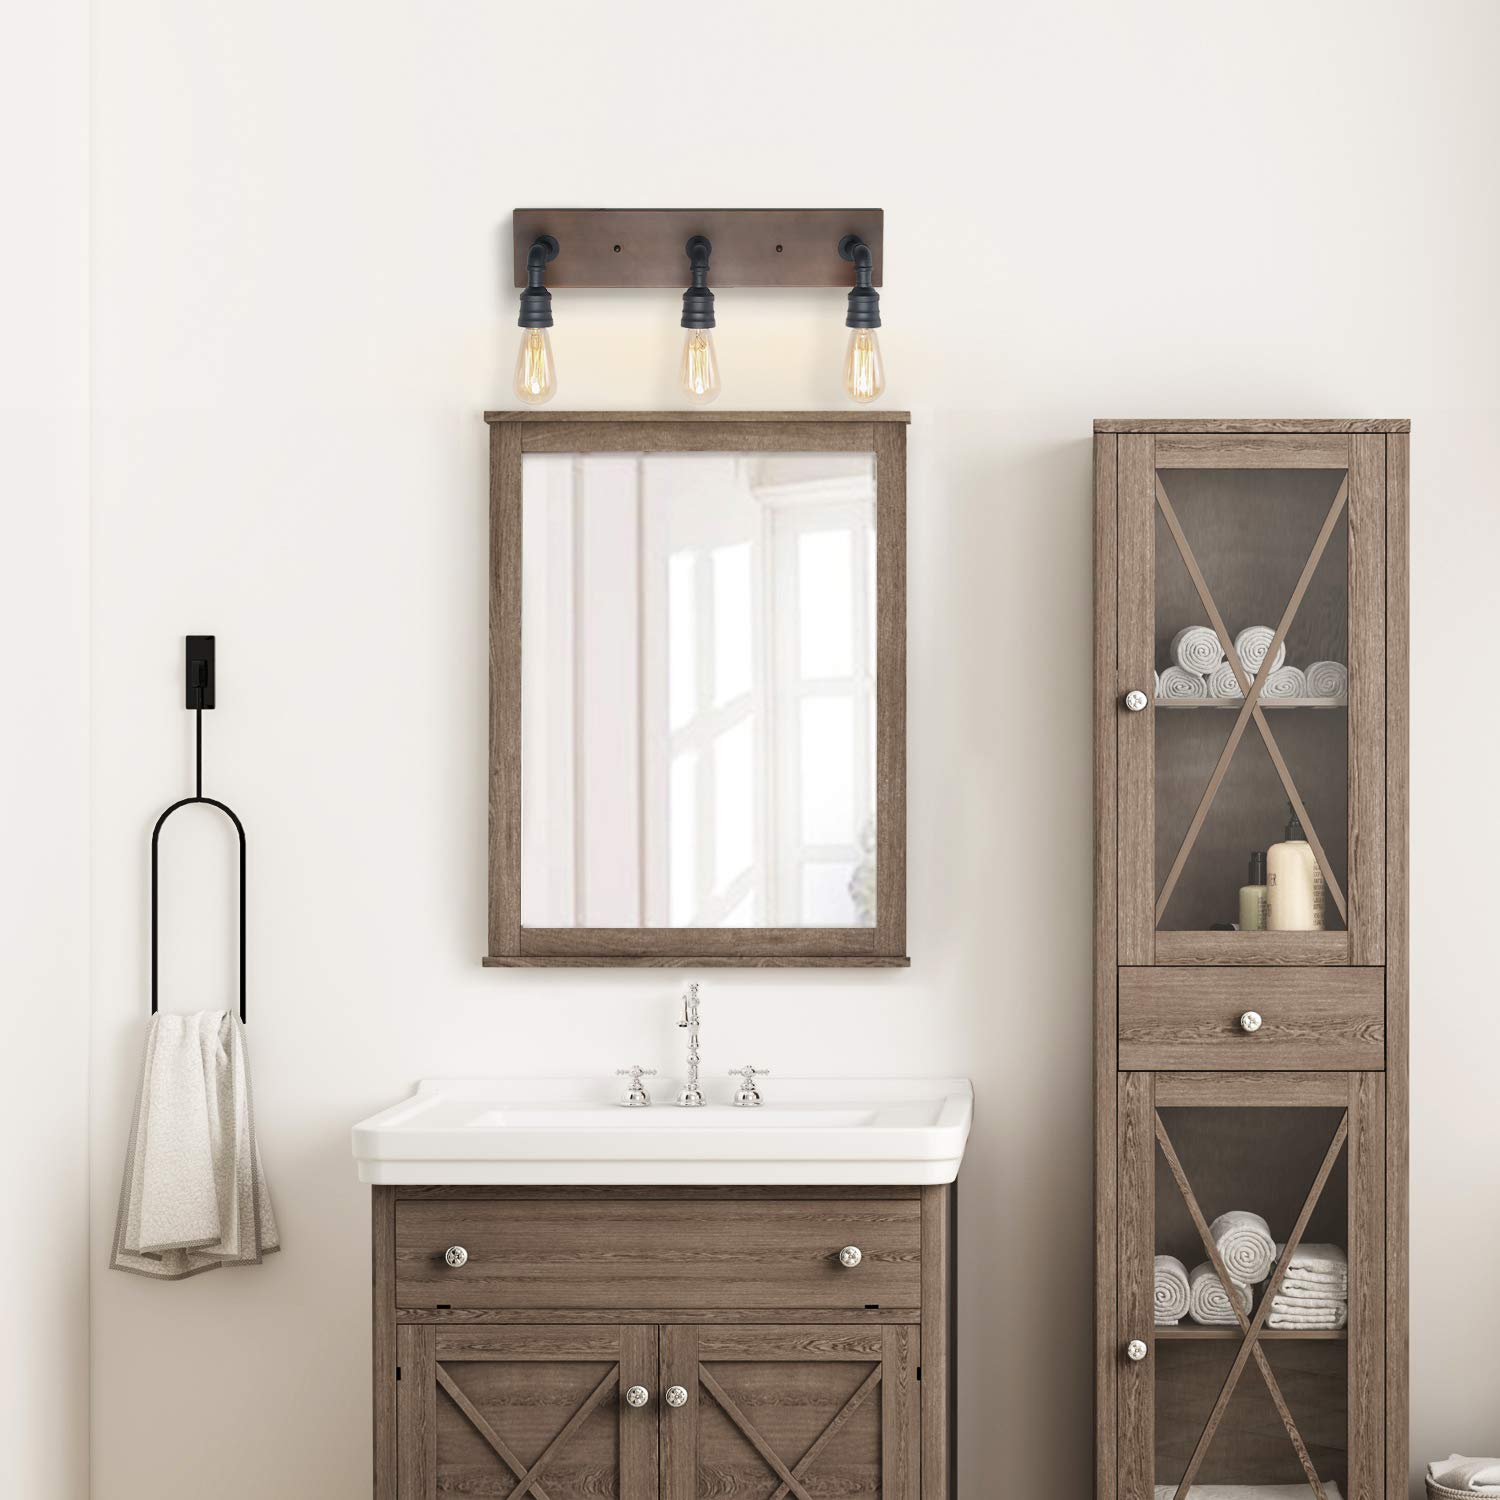 LNC Bathroom Vanity Lights, Farmhouse Wood and Water Pipe Wall Sconces(3 Heads )A03376, by LNC (Image #3)